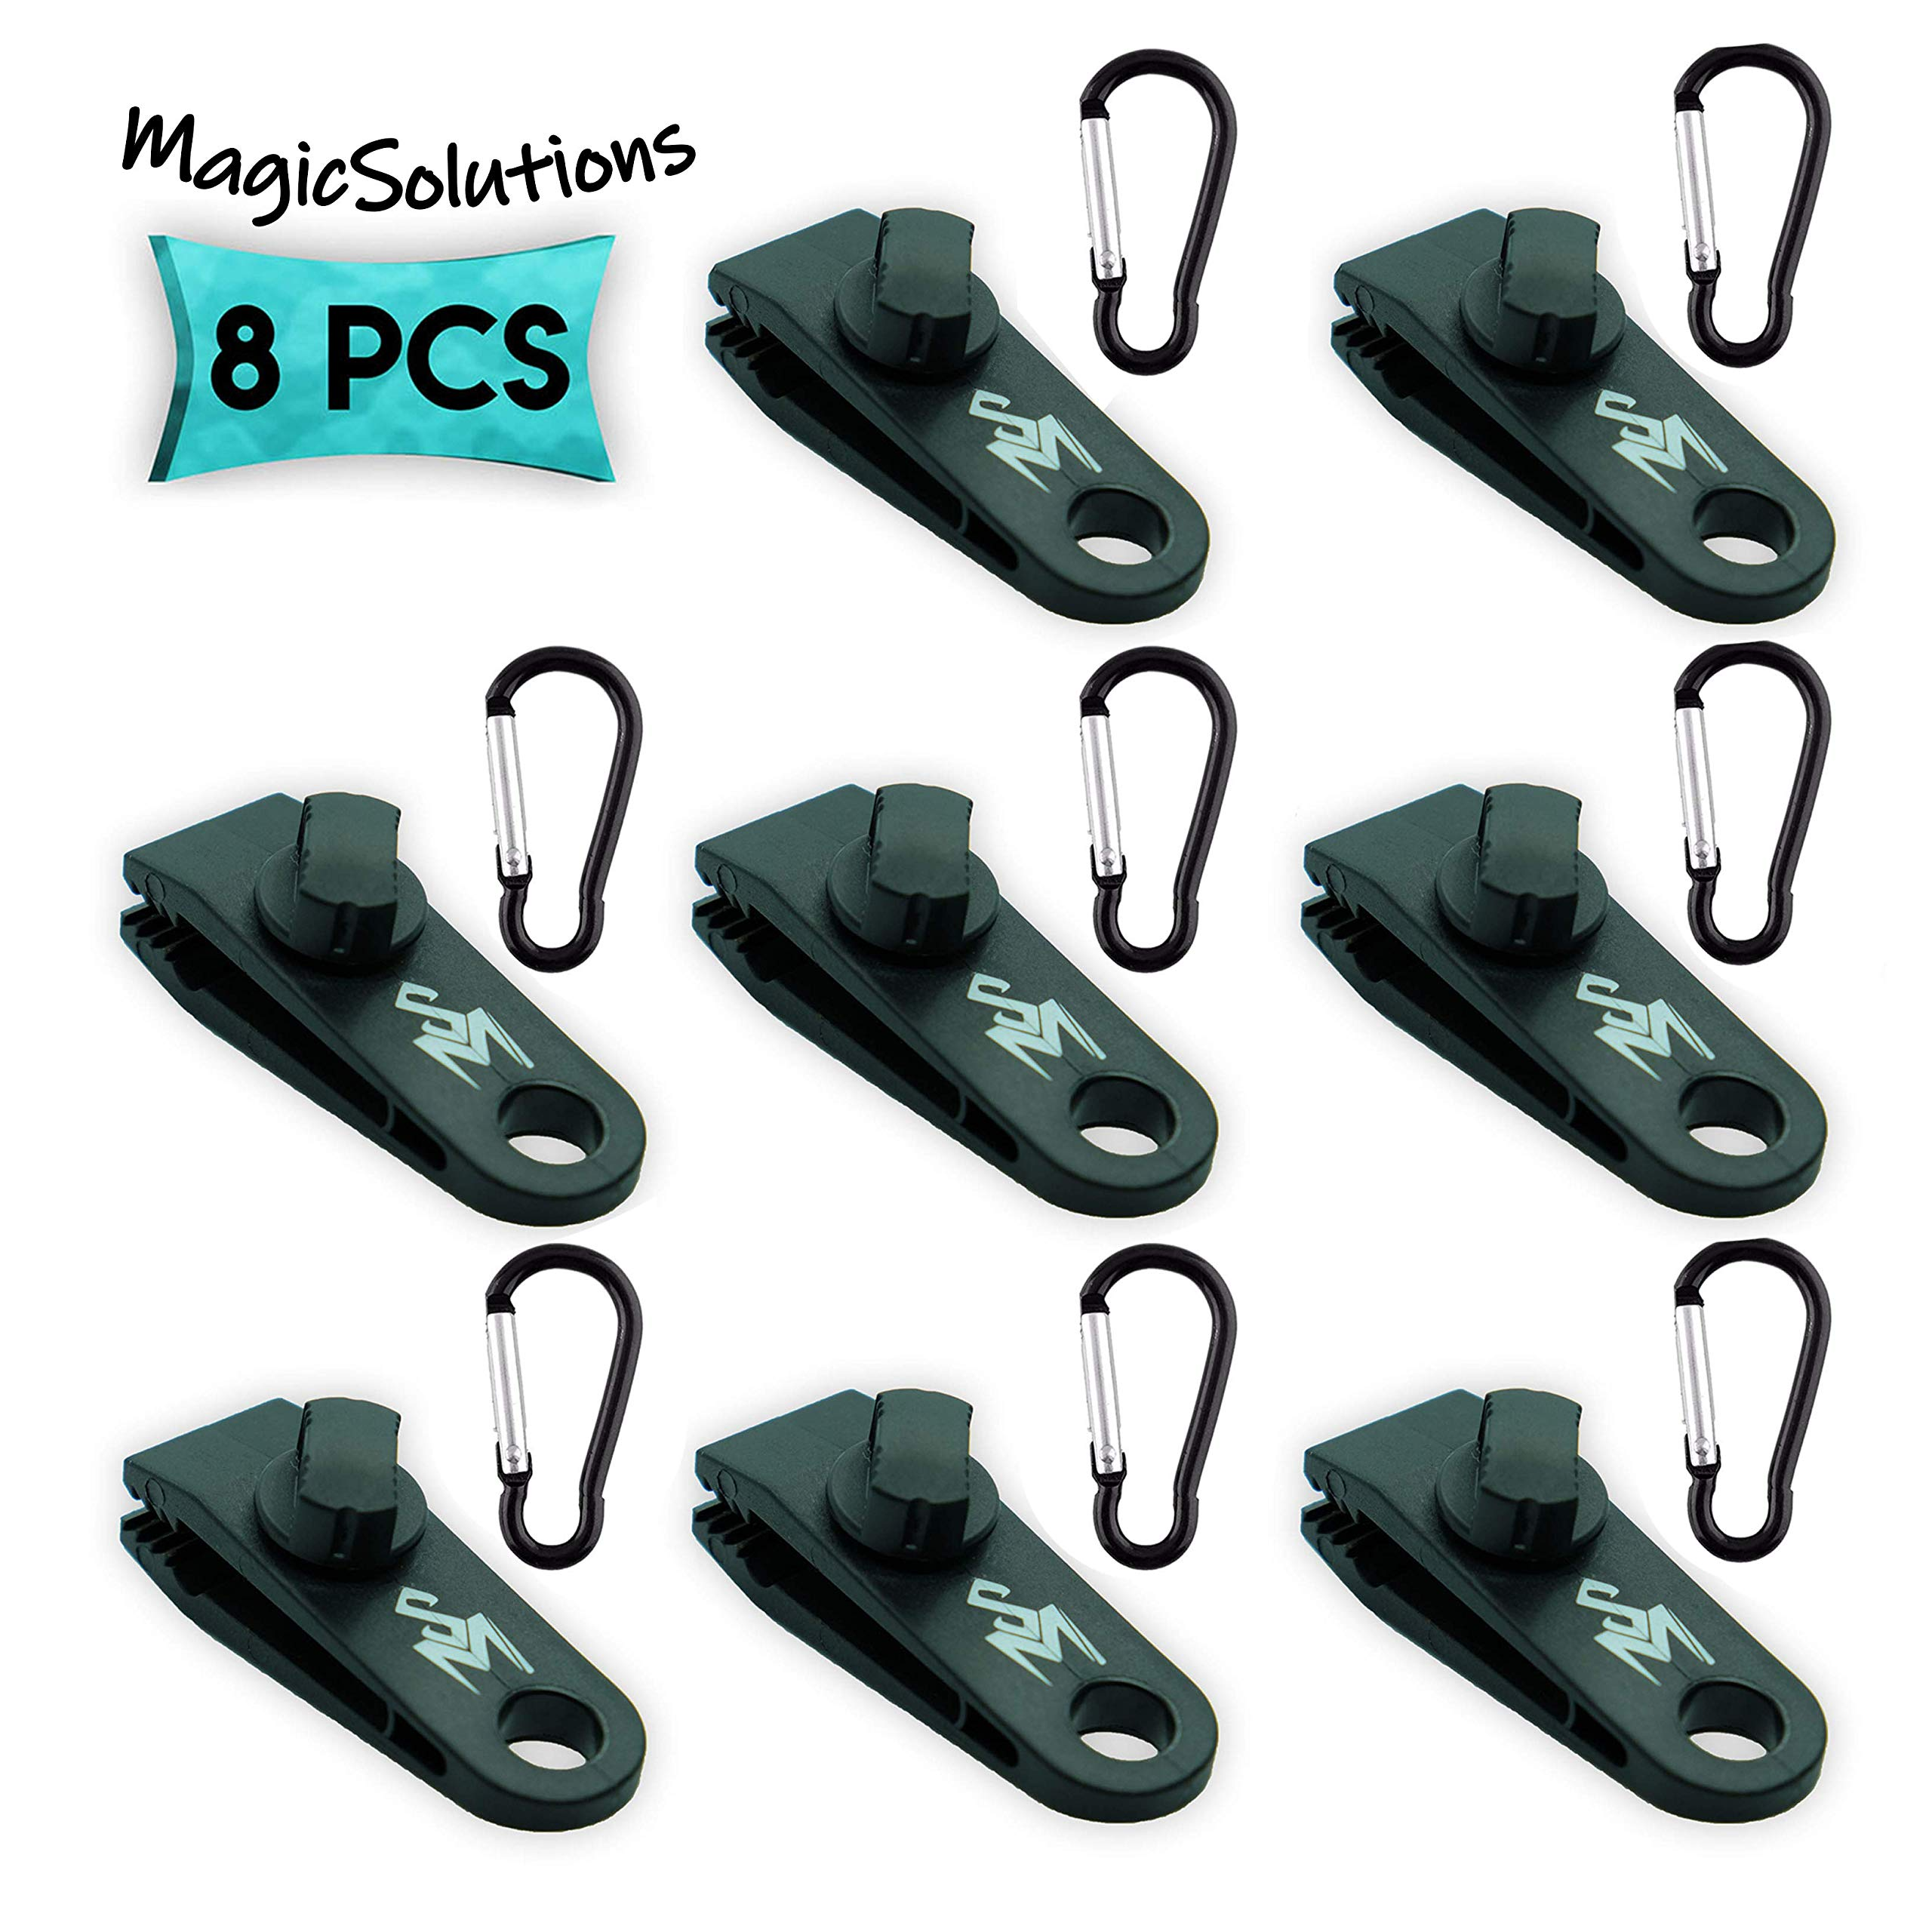 MagicSolutions (8 Pack) Tarp Clips with Carabiner | Great for Outdoors Camping Awning Tent | Canopies and Covers | Powerful Locking Jaws Material. by MagicSolutions